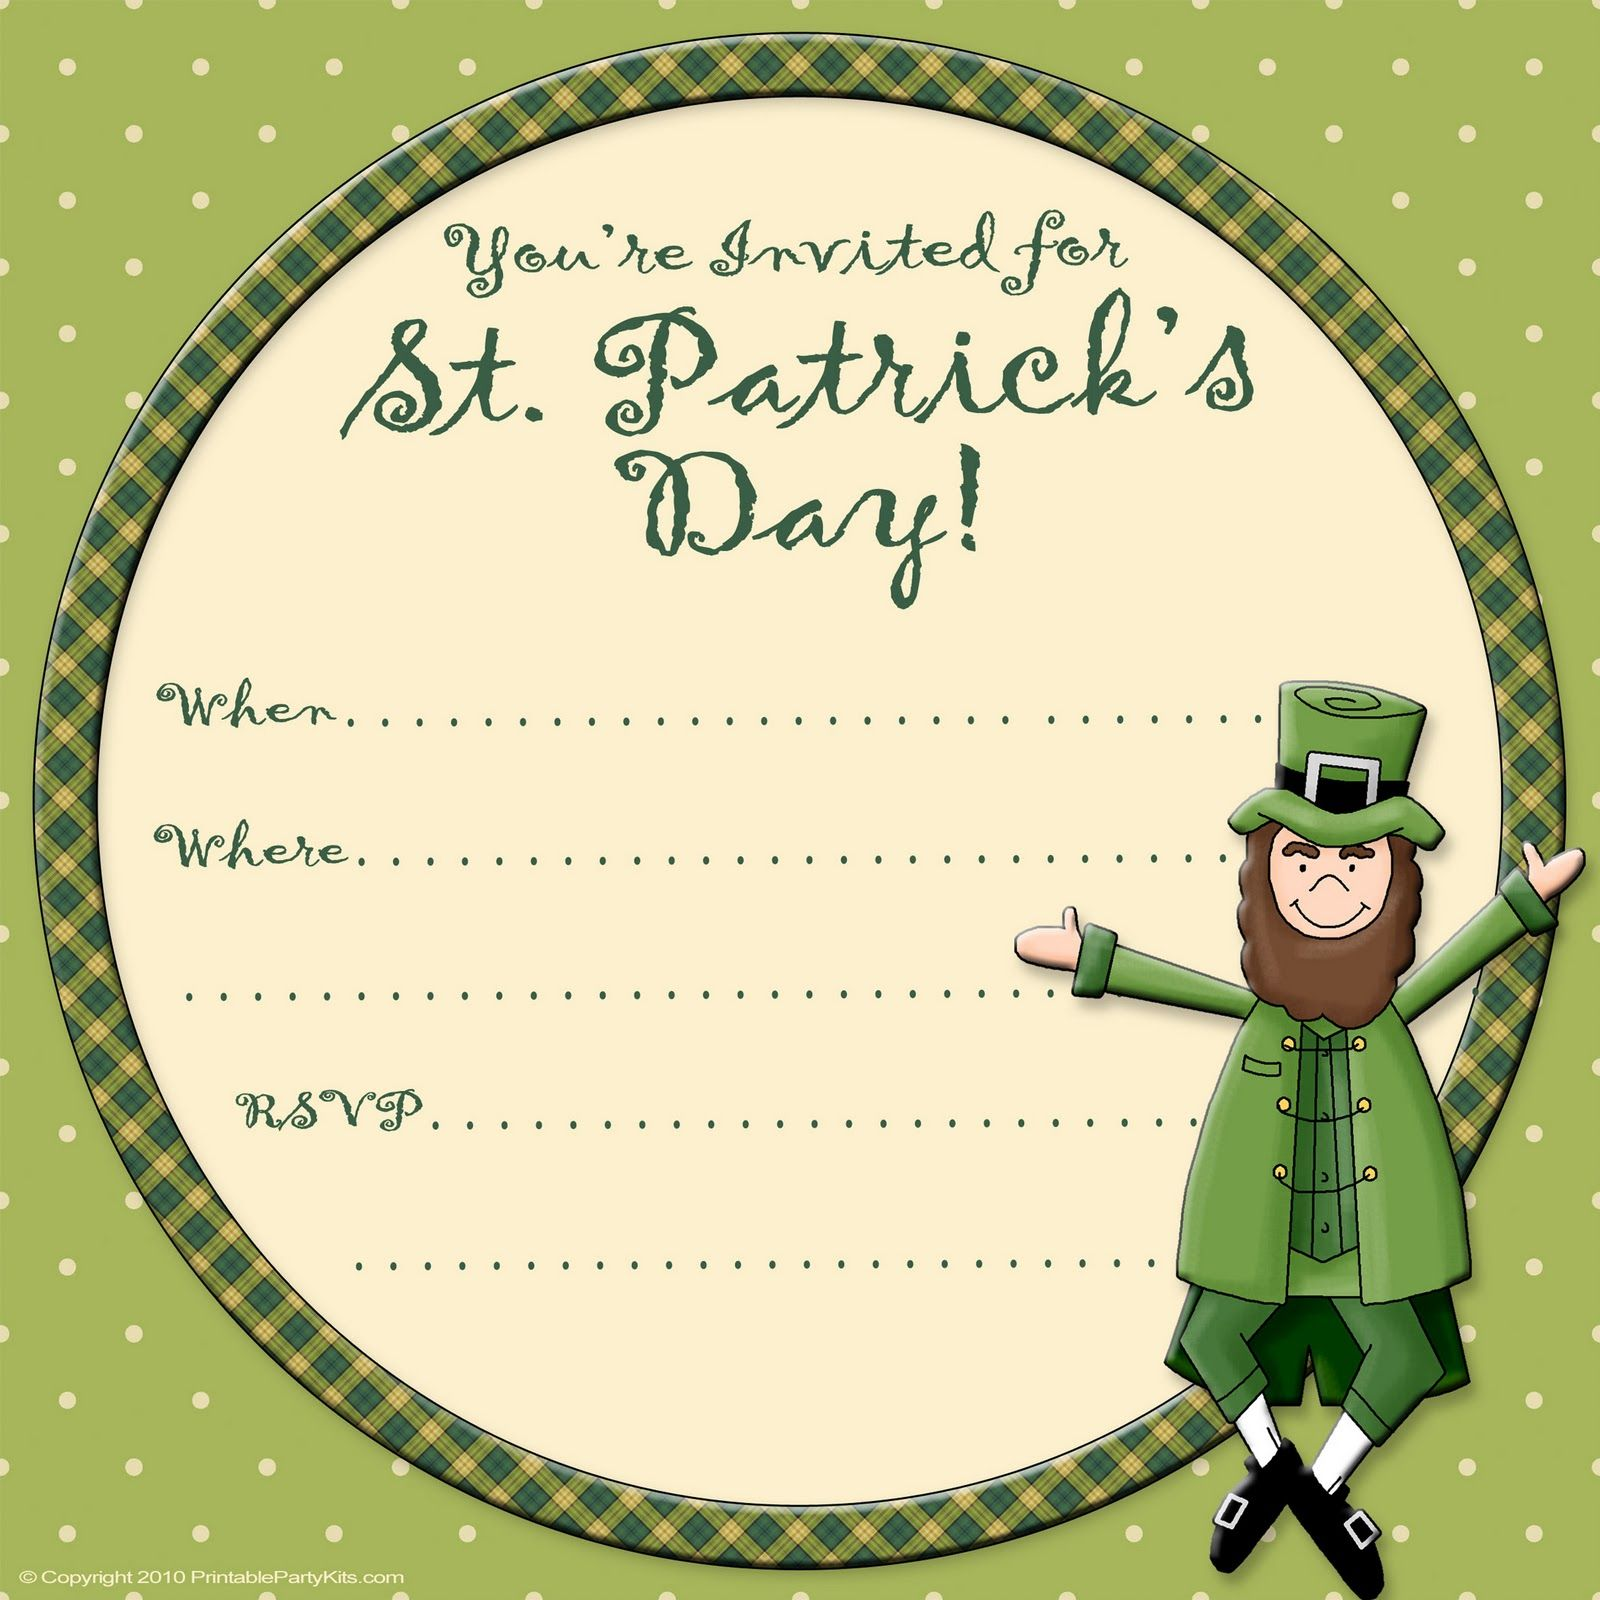 Free Printable Party Invitations: Free St. Patrick\'s Day Invite ...